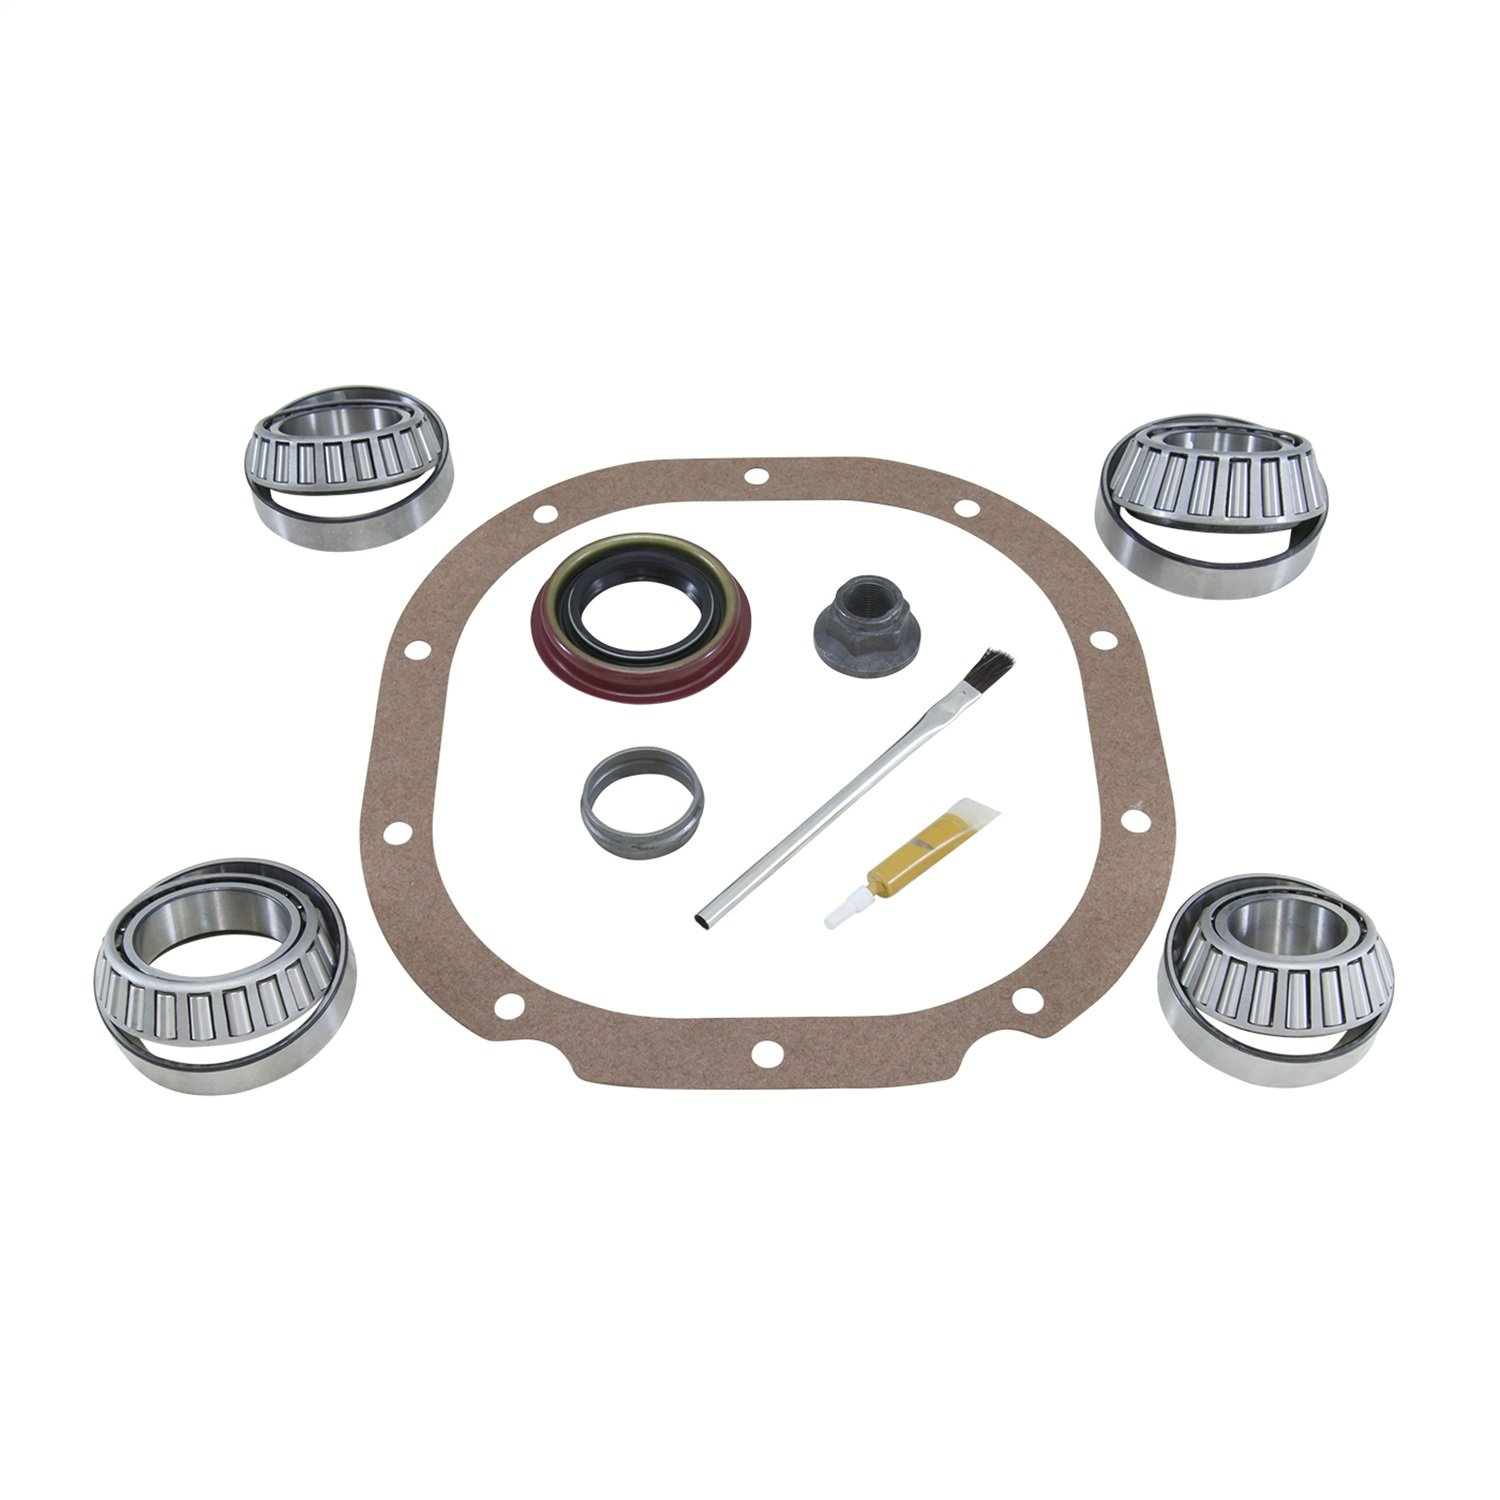 USA Standard Gear (ZBKF8.8) Bearing Kit for Ford 8.8 Differential by USA Standard Gear